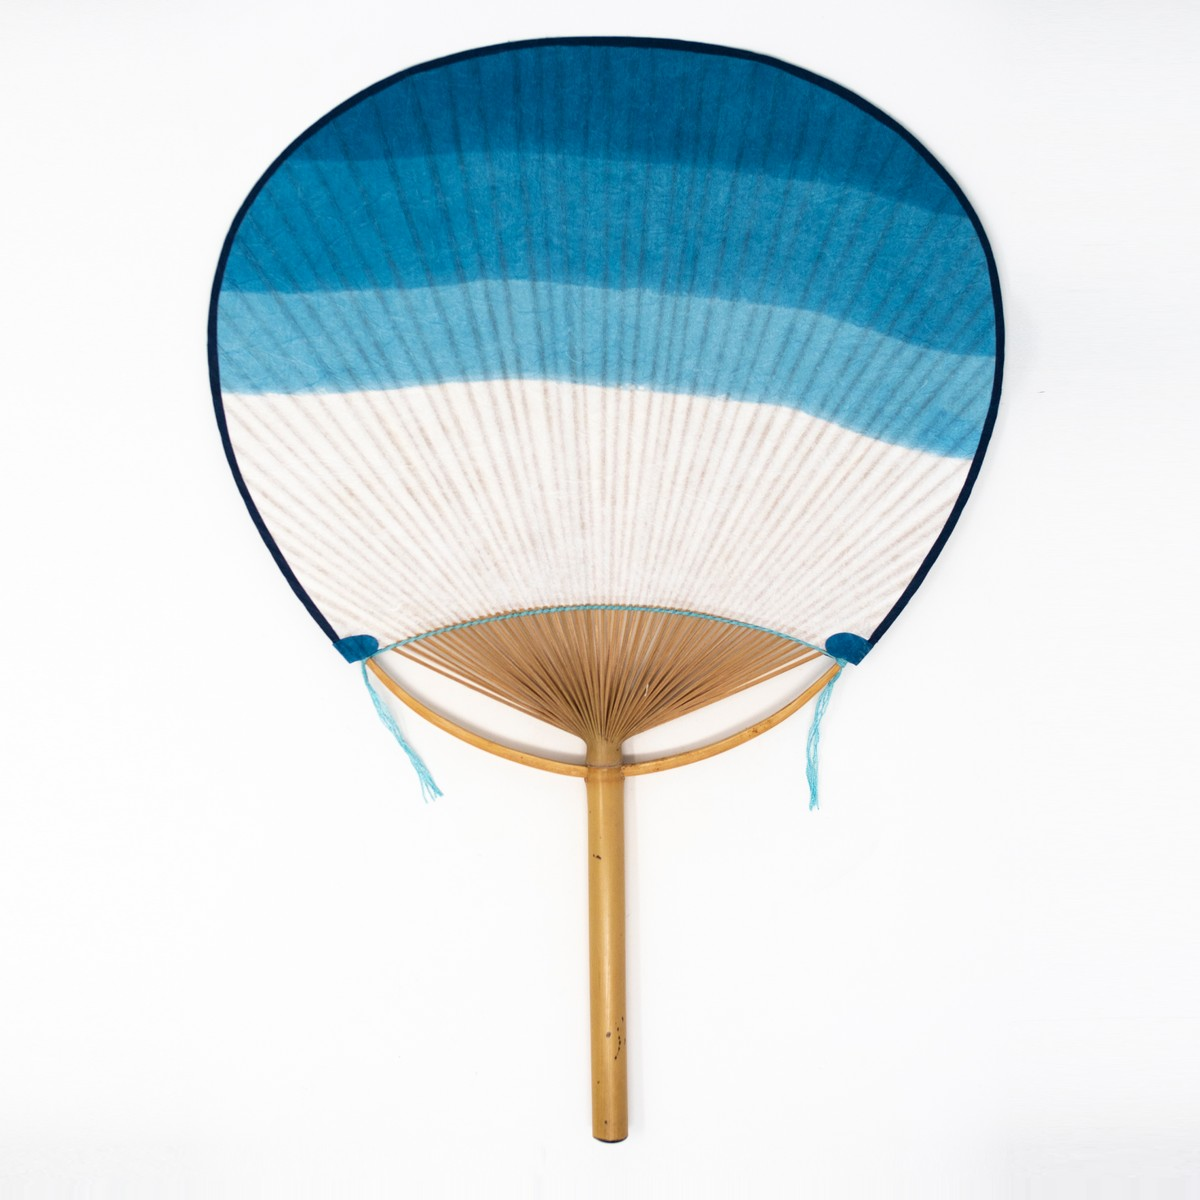 Photo of Uchiwa Danzome Indigo Fan